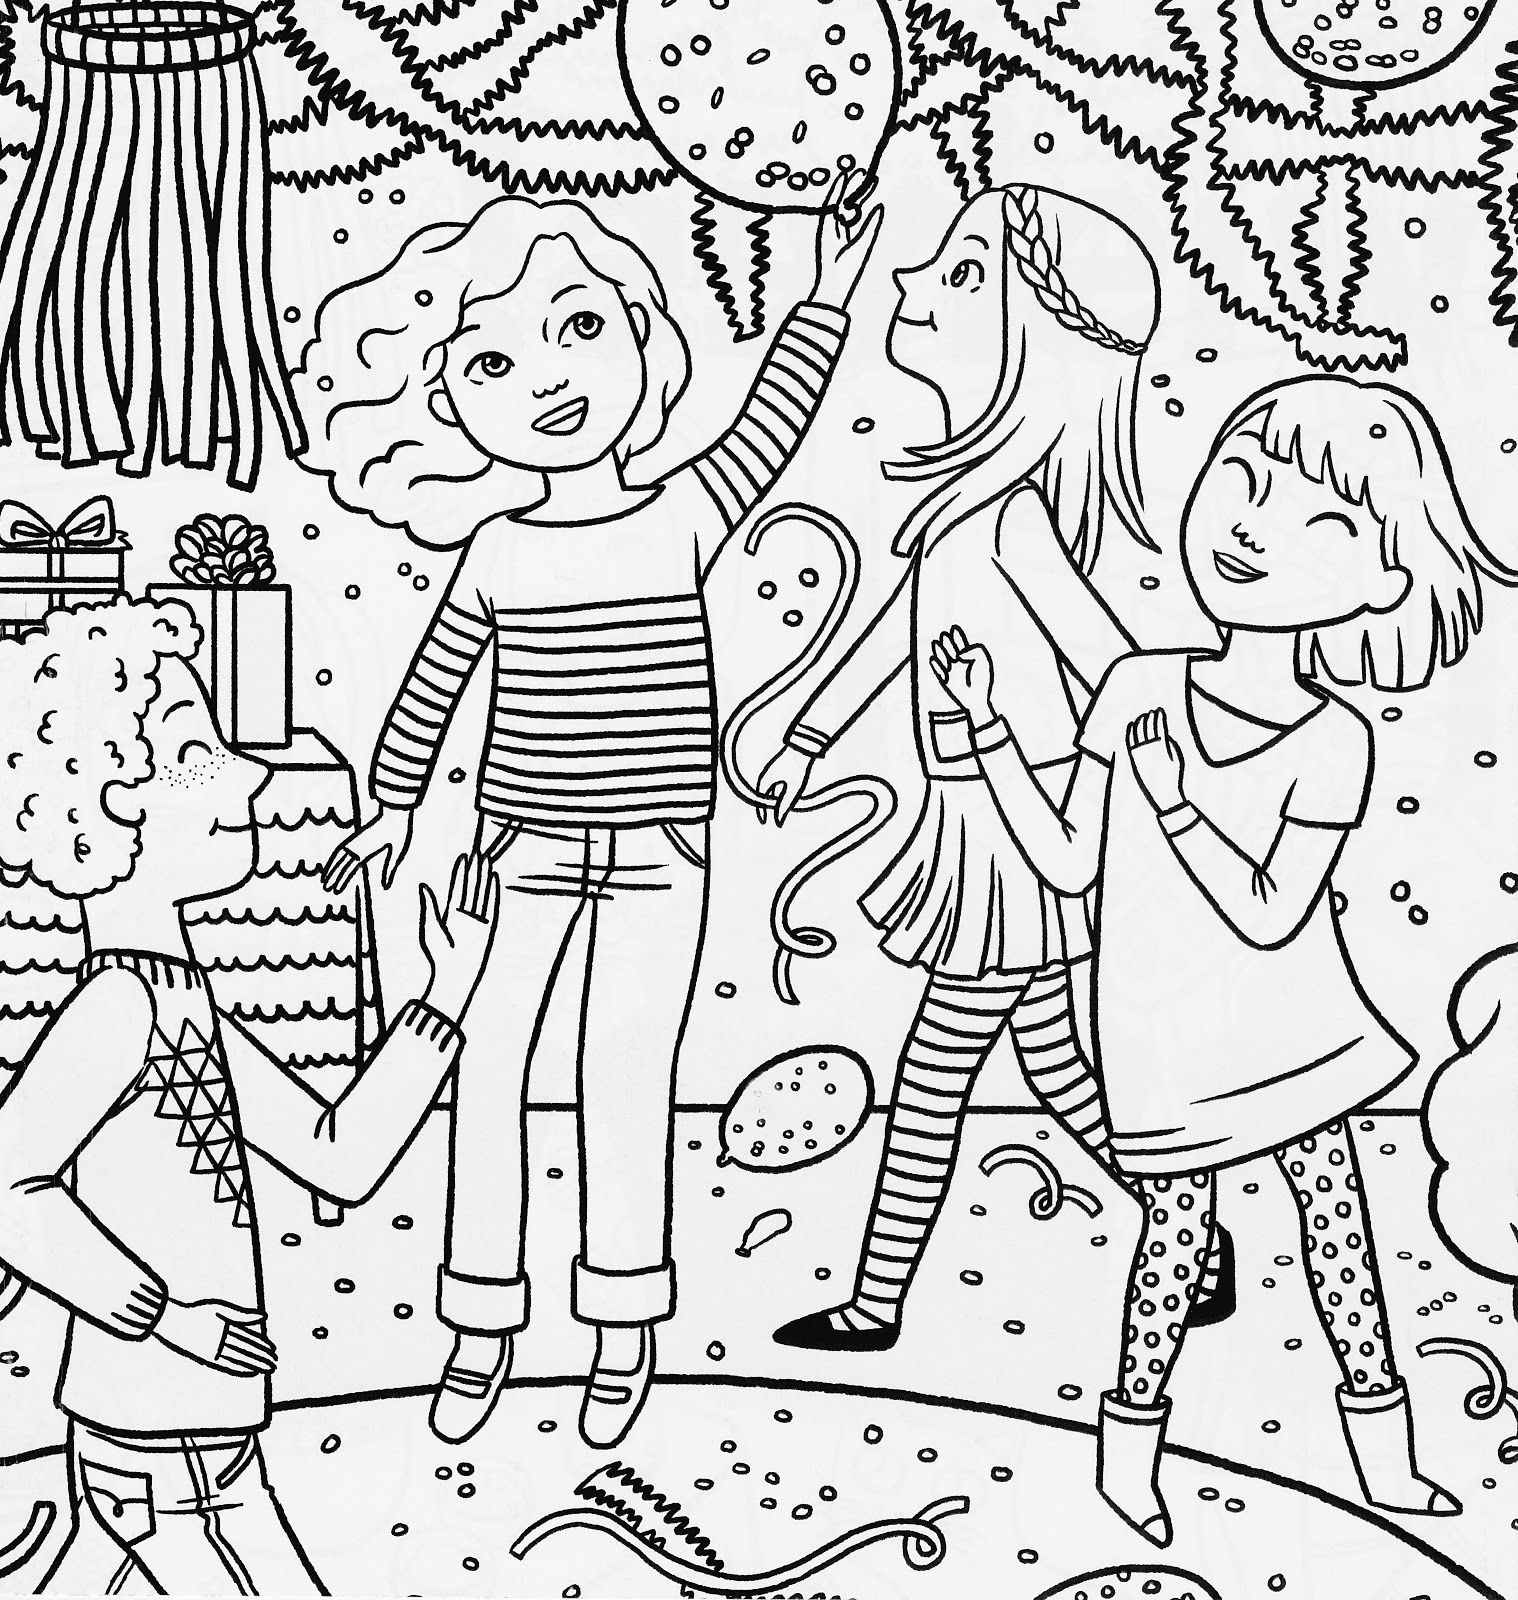 american girl doll coloring pages free wallpapers httpwallpaperzoocom